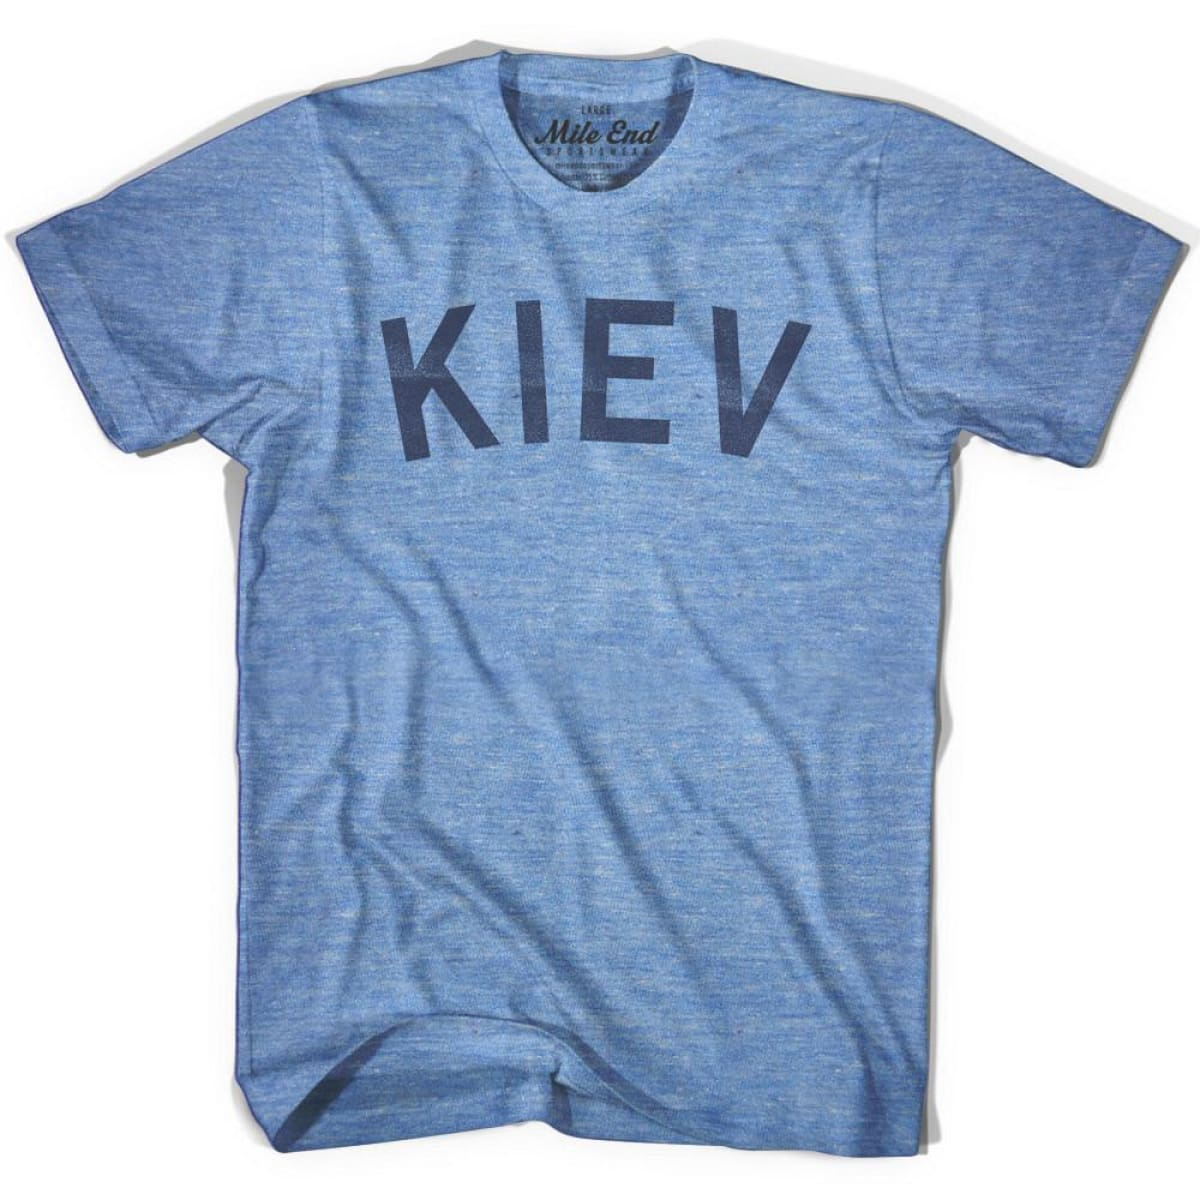 Kiev City Vintage T-shirt - Athletic Blue / Adult X-Small - Mile End City